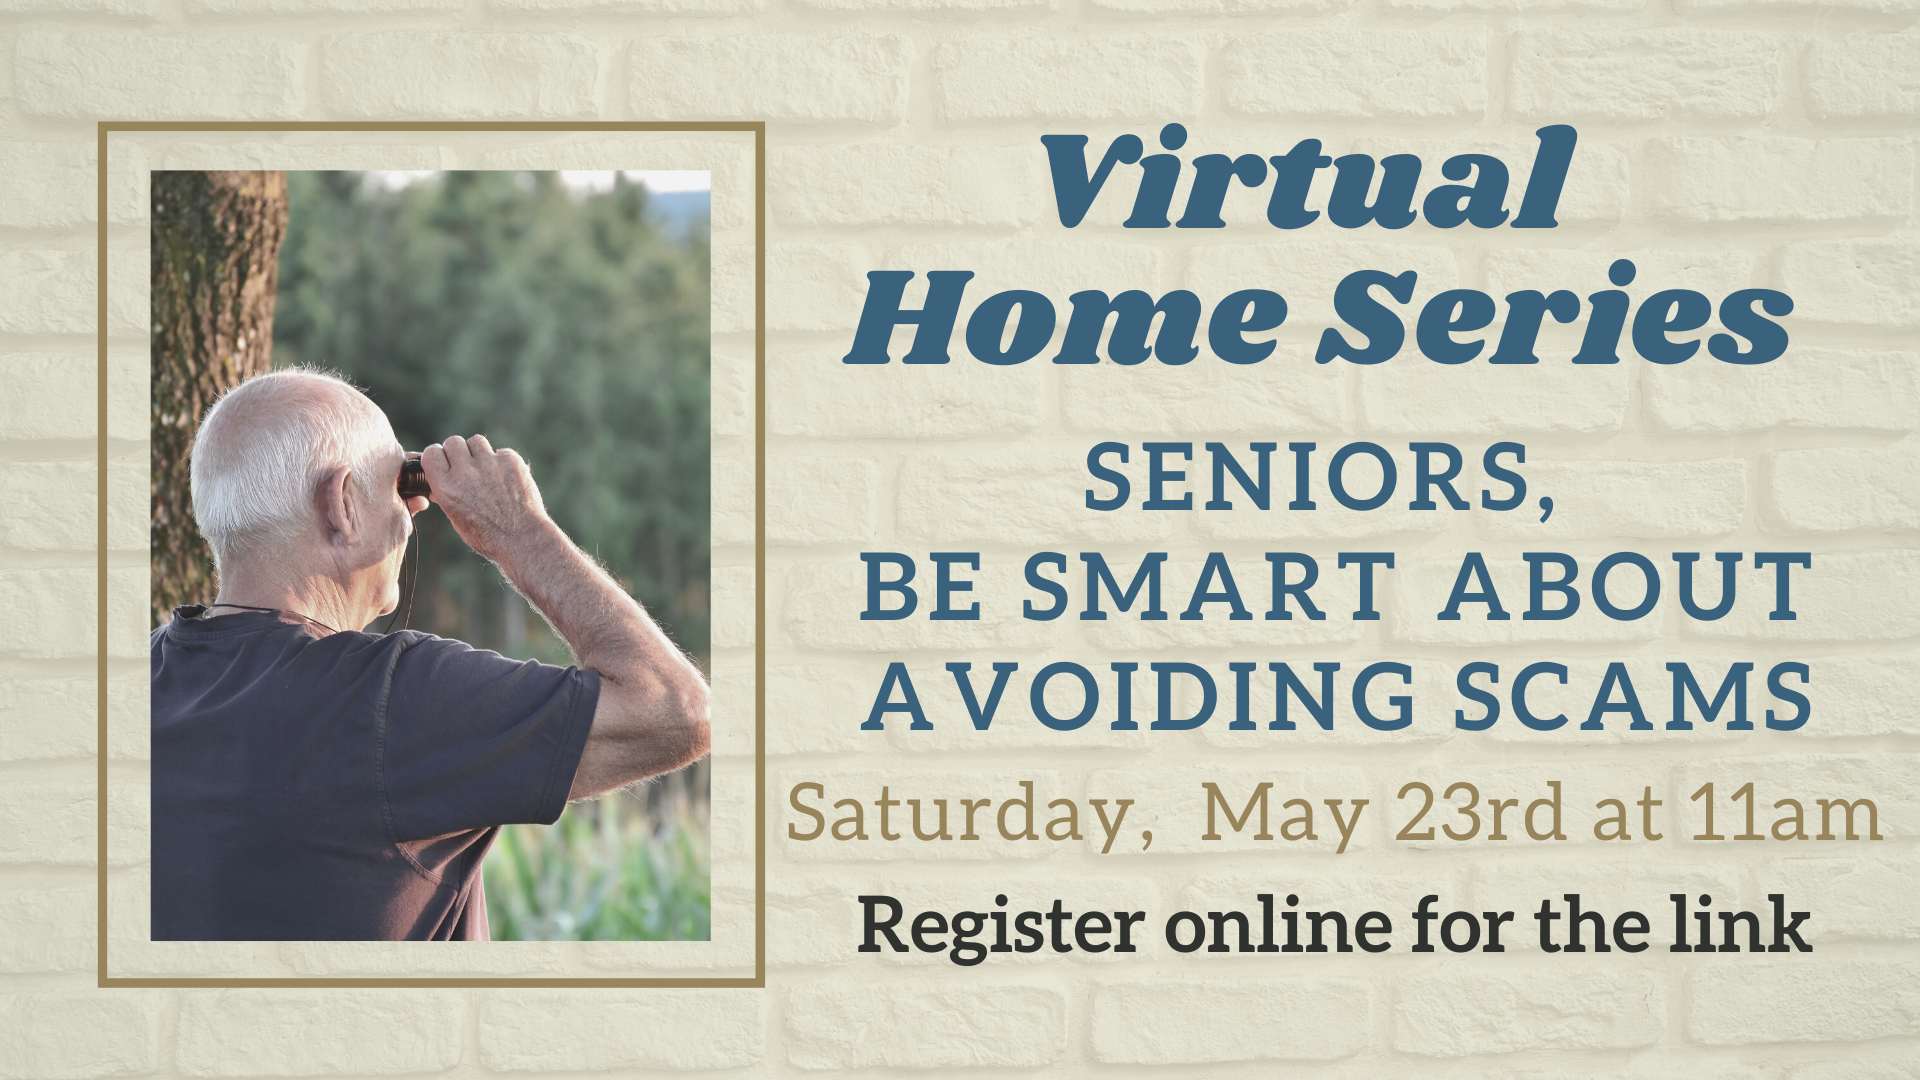 Virtual Home Series: Seniors, Be Smart About Avoiding Scams